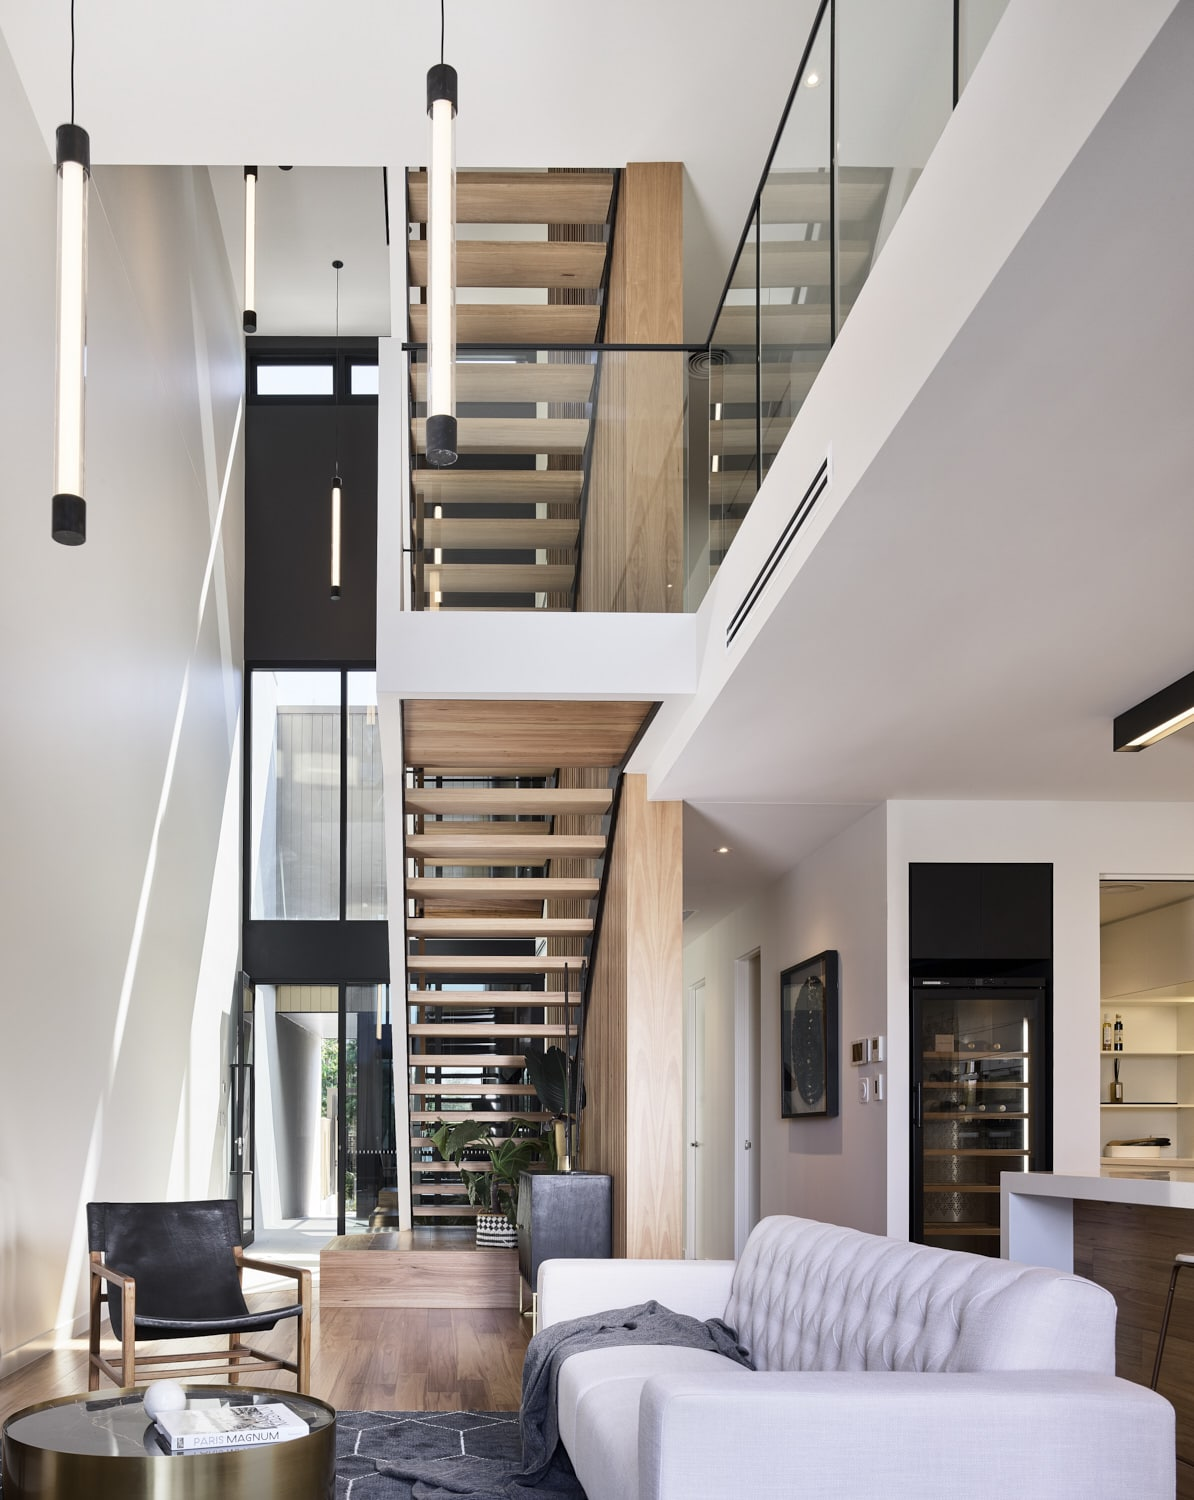 River Homes Hamilton for Frasers Property + Rothelowman